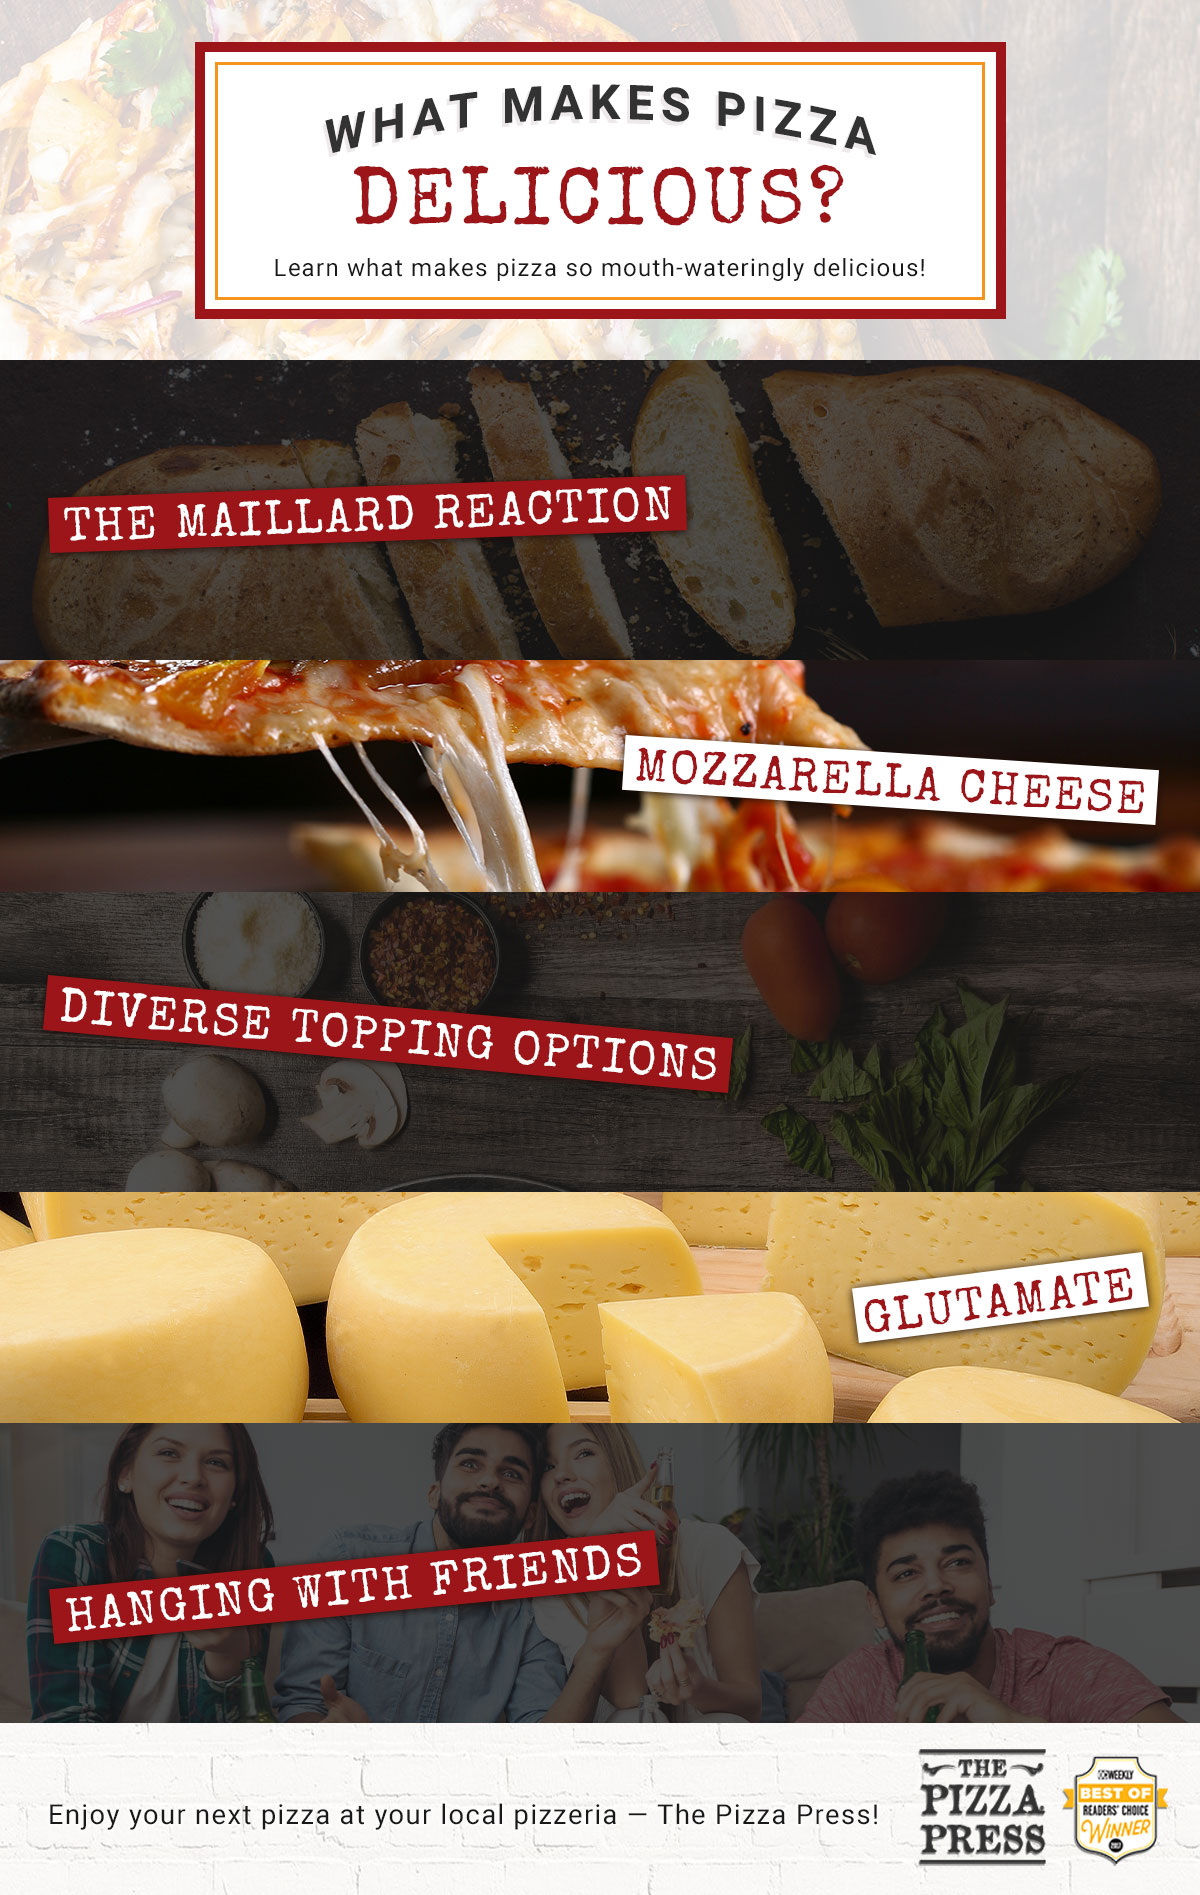 What Makes Pizza Delicious infographic